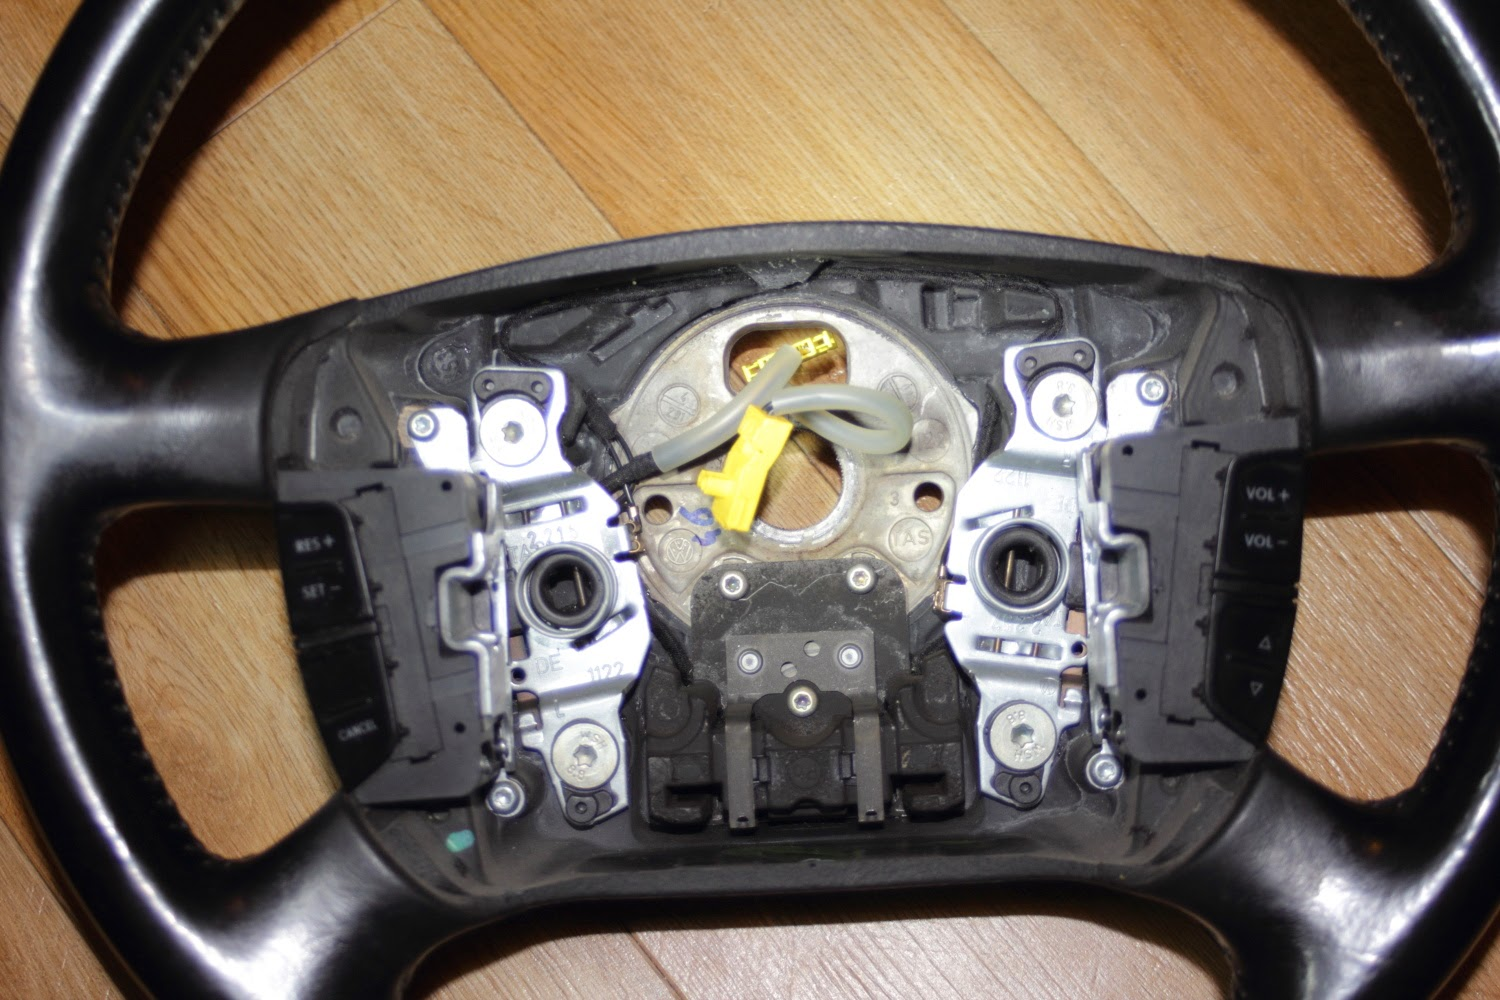 VW Golf MK4 Steering wheel with airbag removed